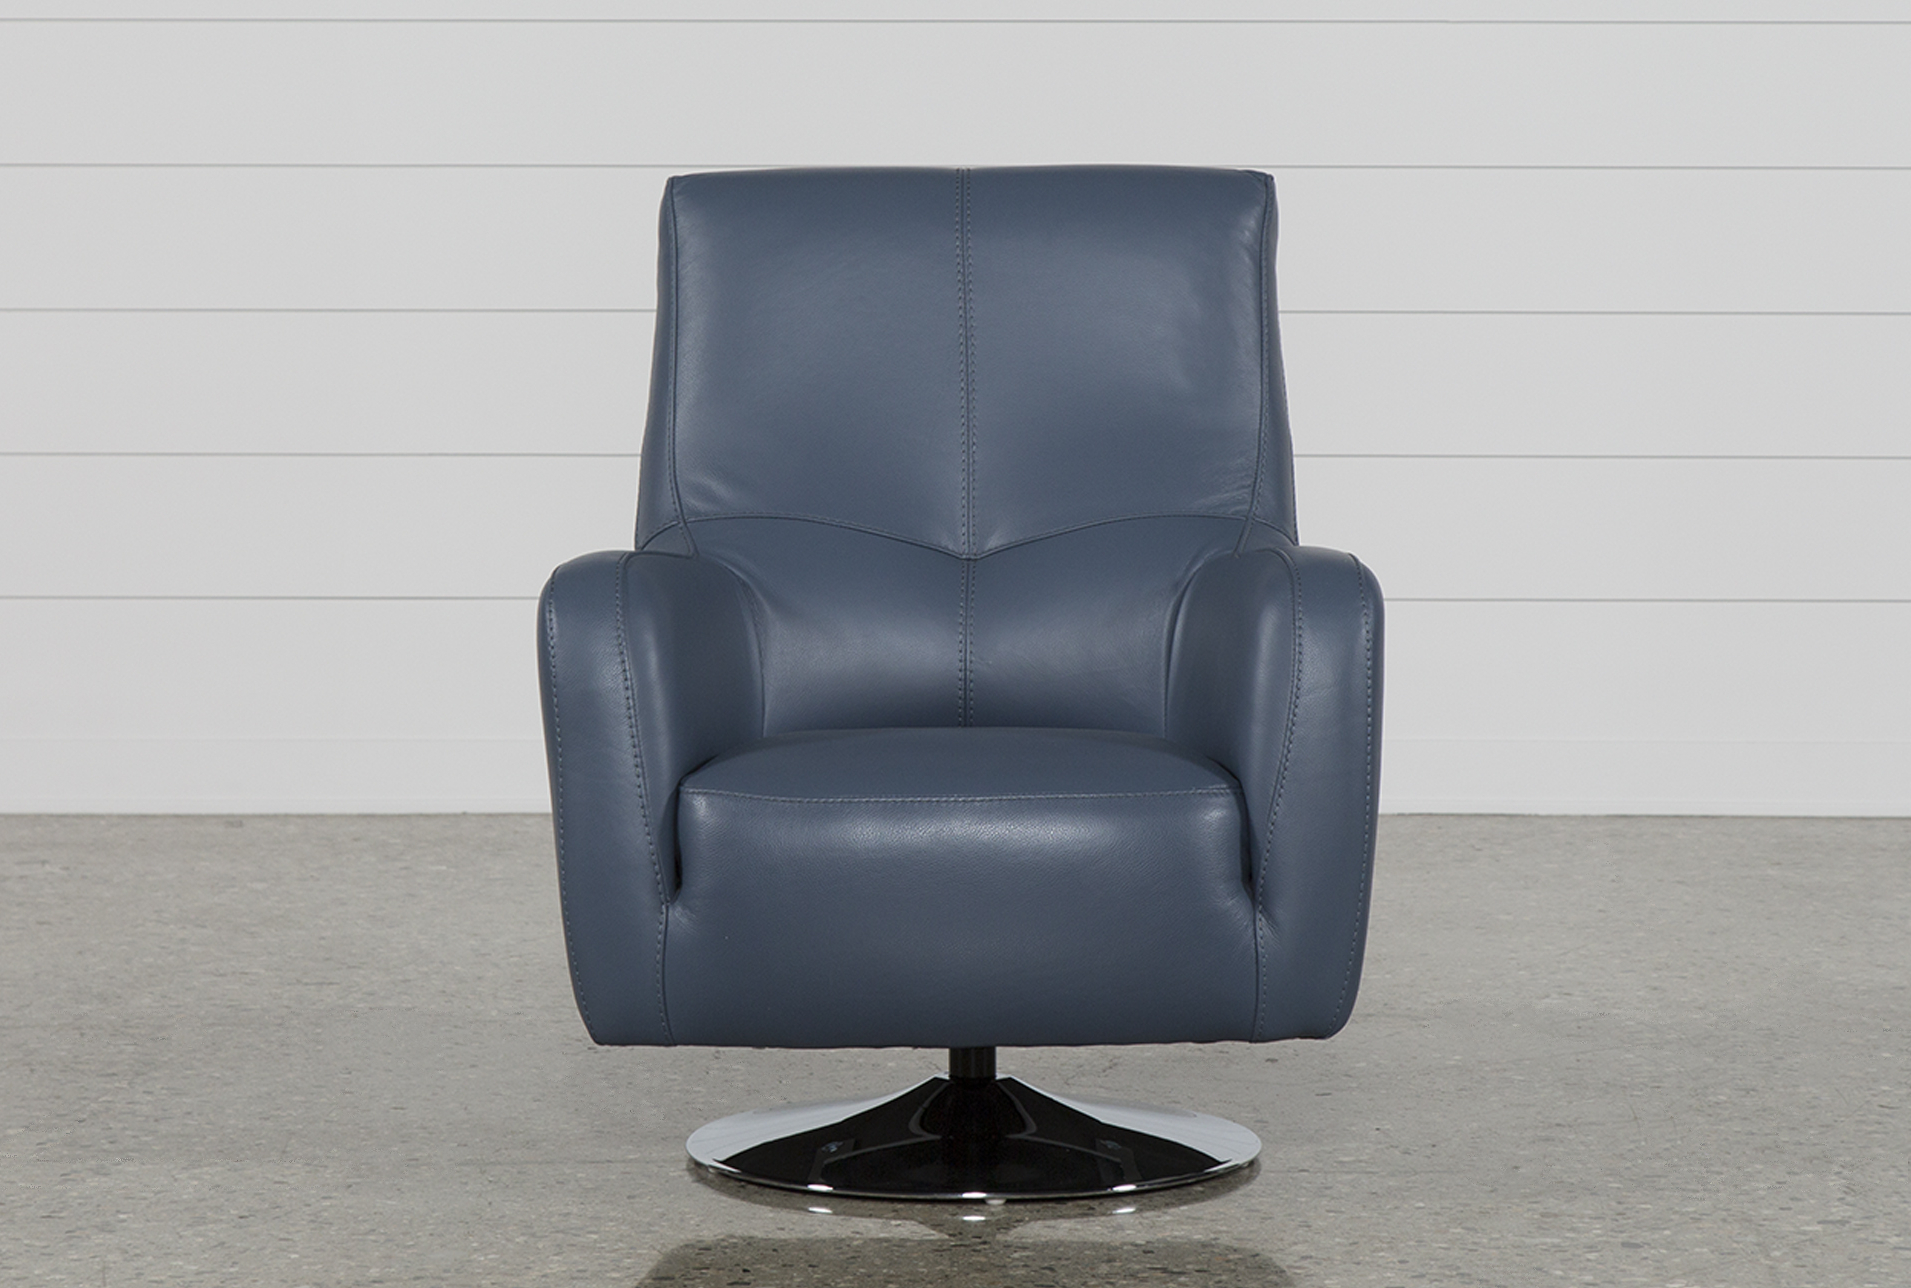 Amala White Leather Reclining Swivel Chairs In Well Known Kawai Leather Swivel Chair (View 5 of 20)